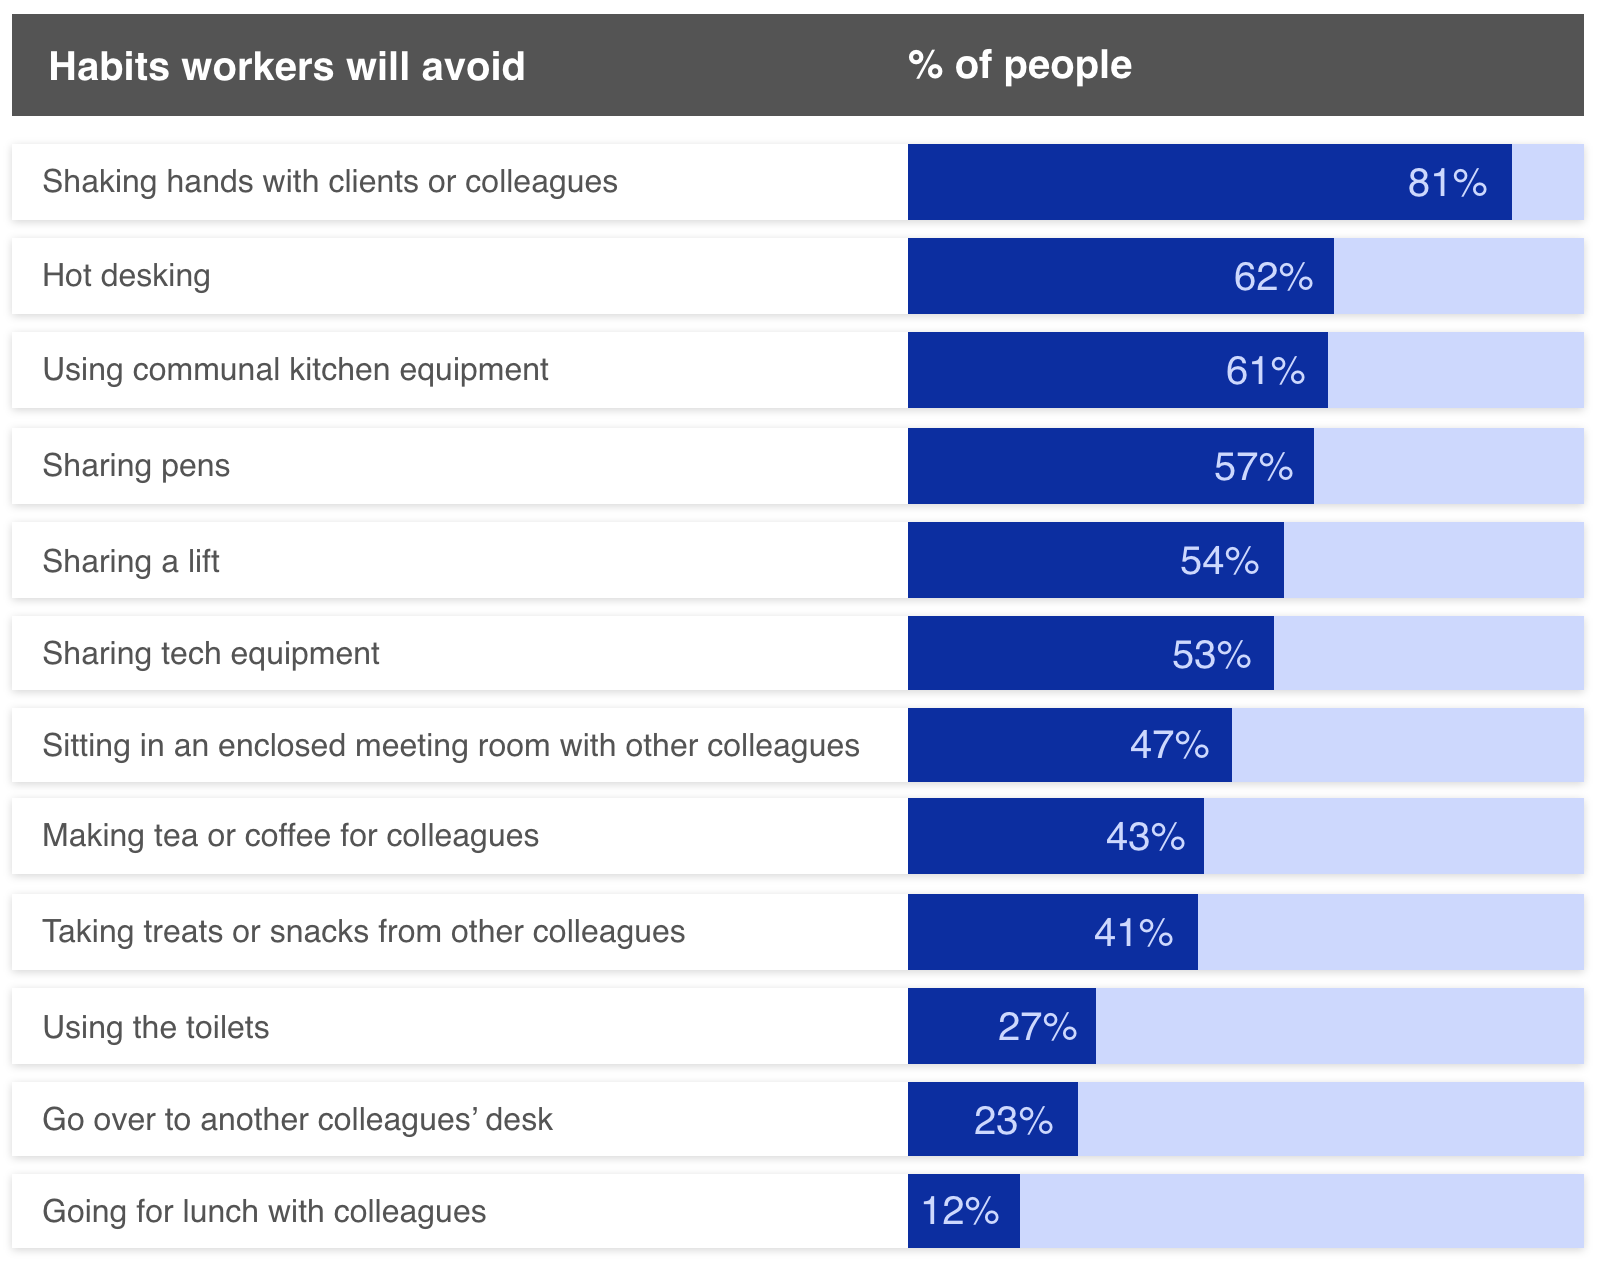 Bar chart showing how workers habits will change post-lockdown by percentage